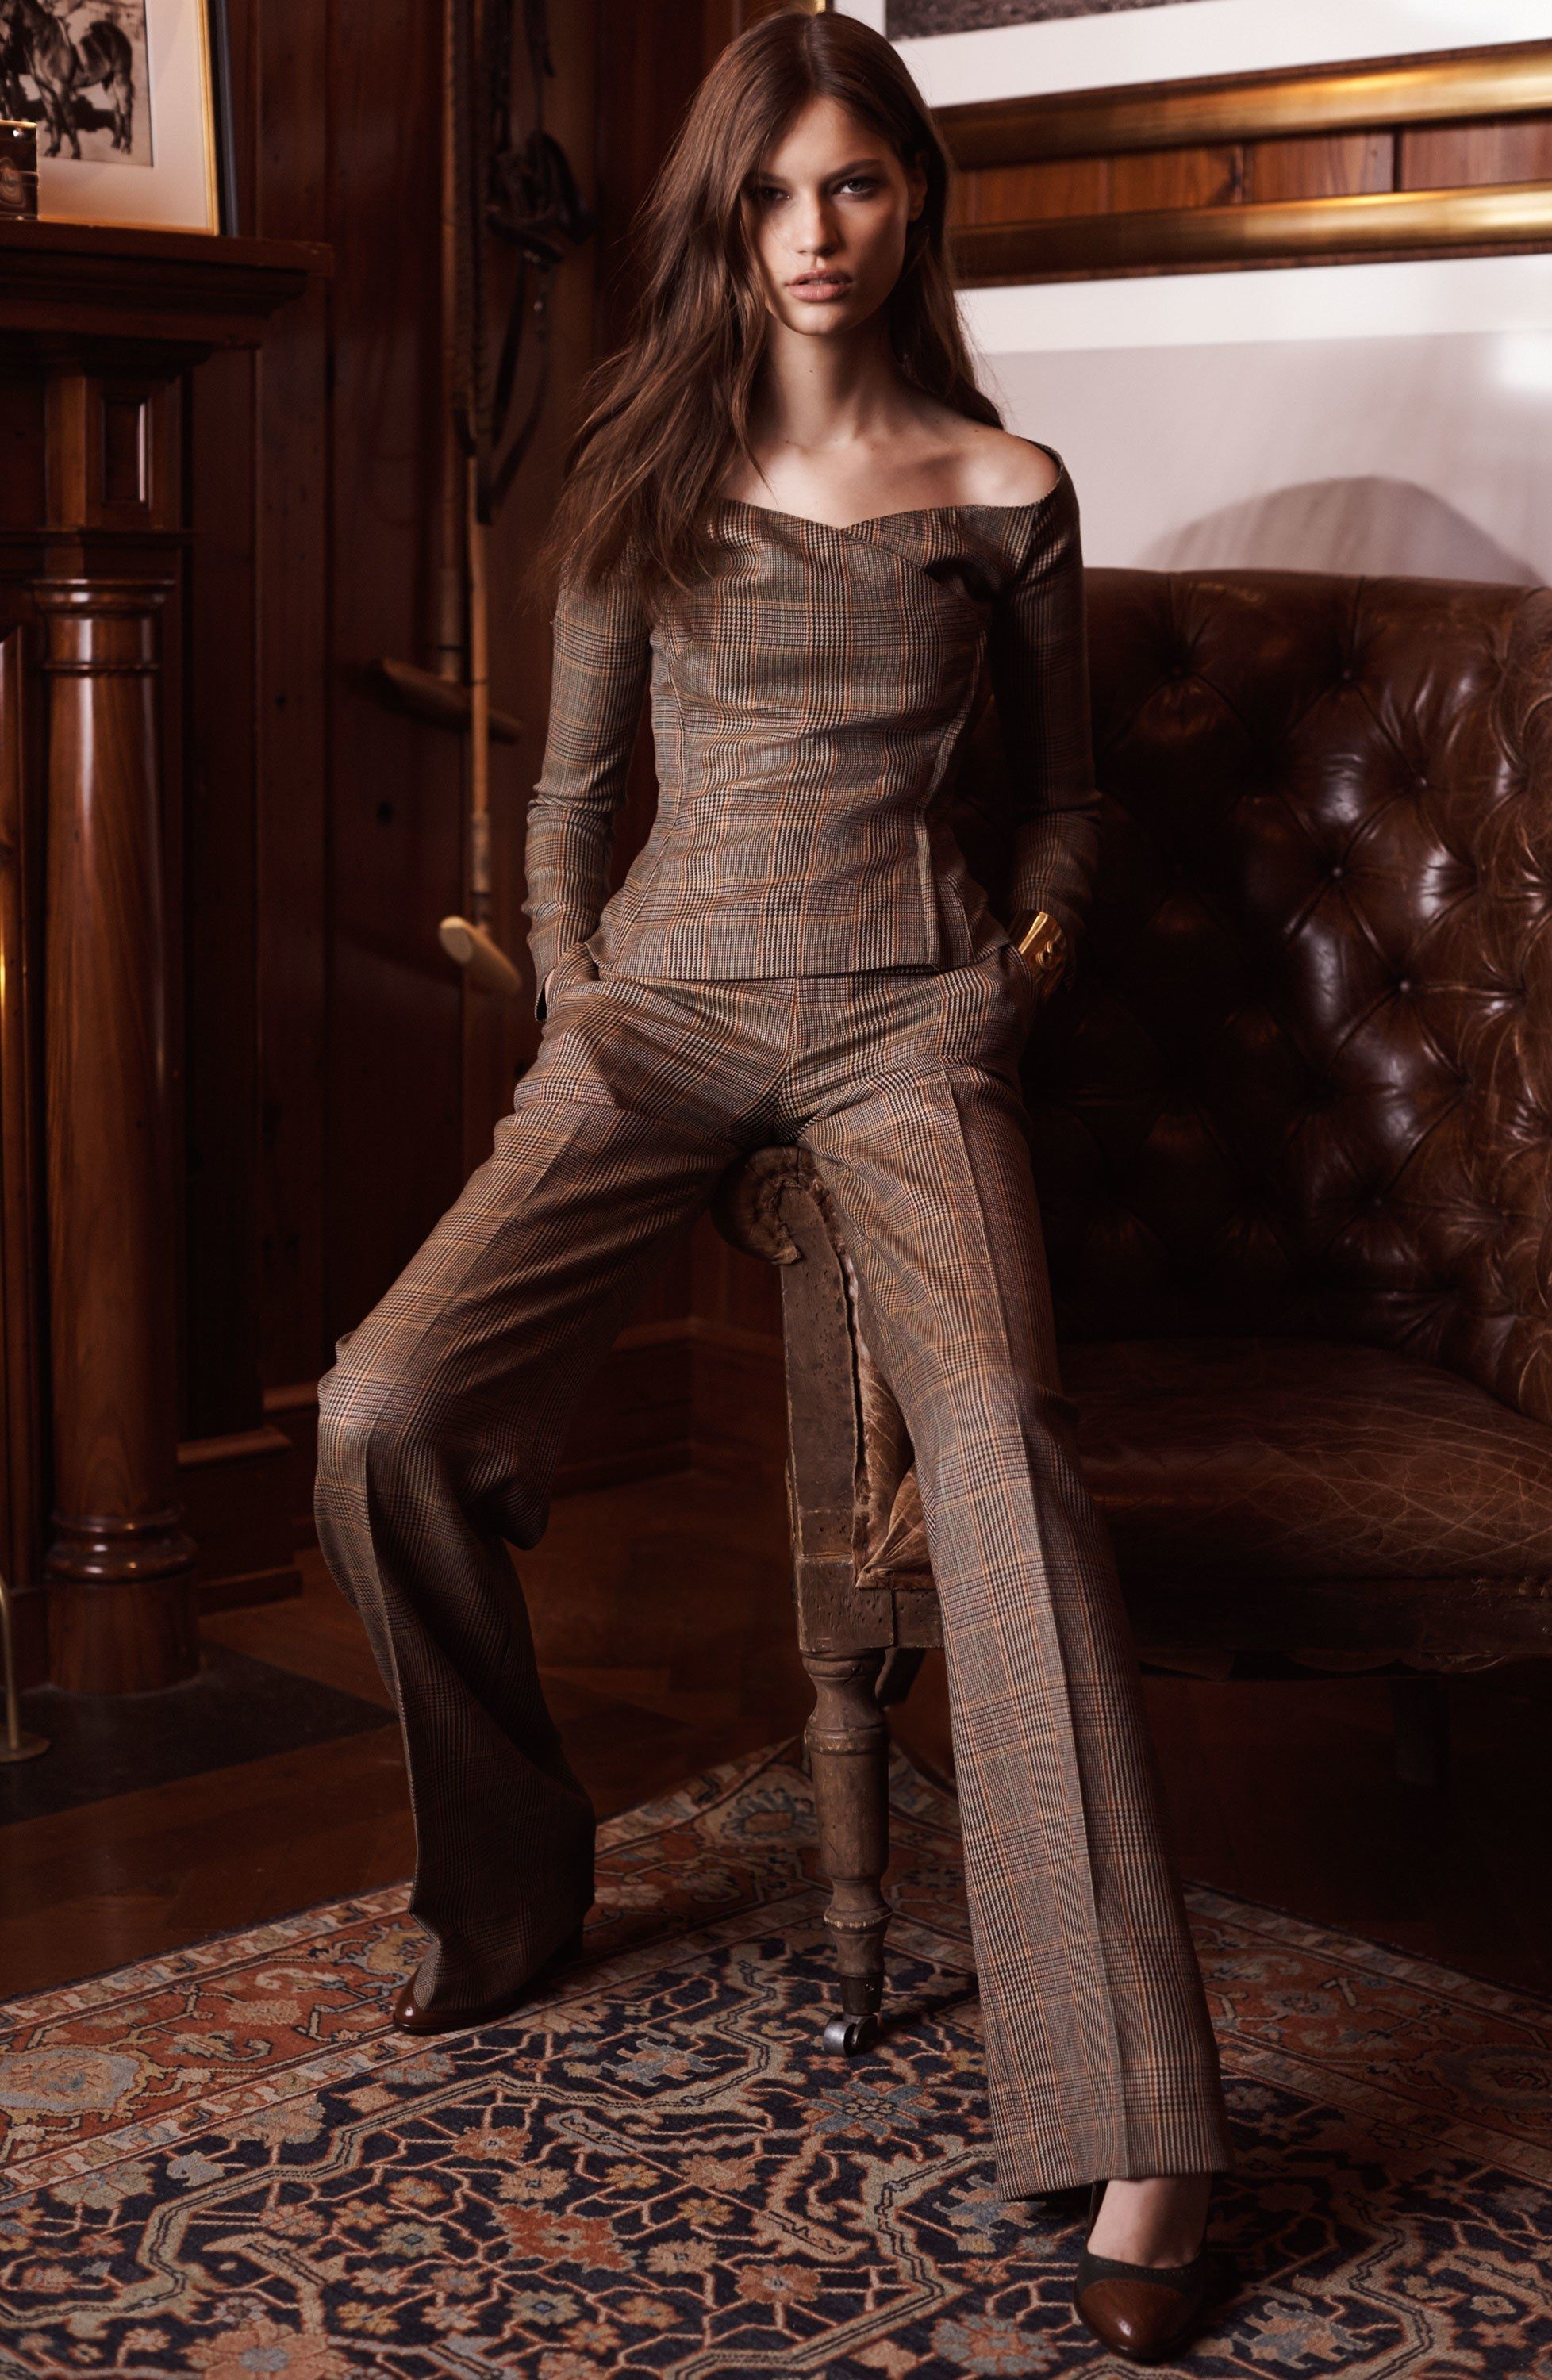 Victoria Andrianova: fashion is out of time